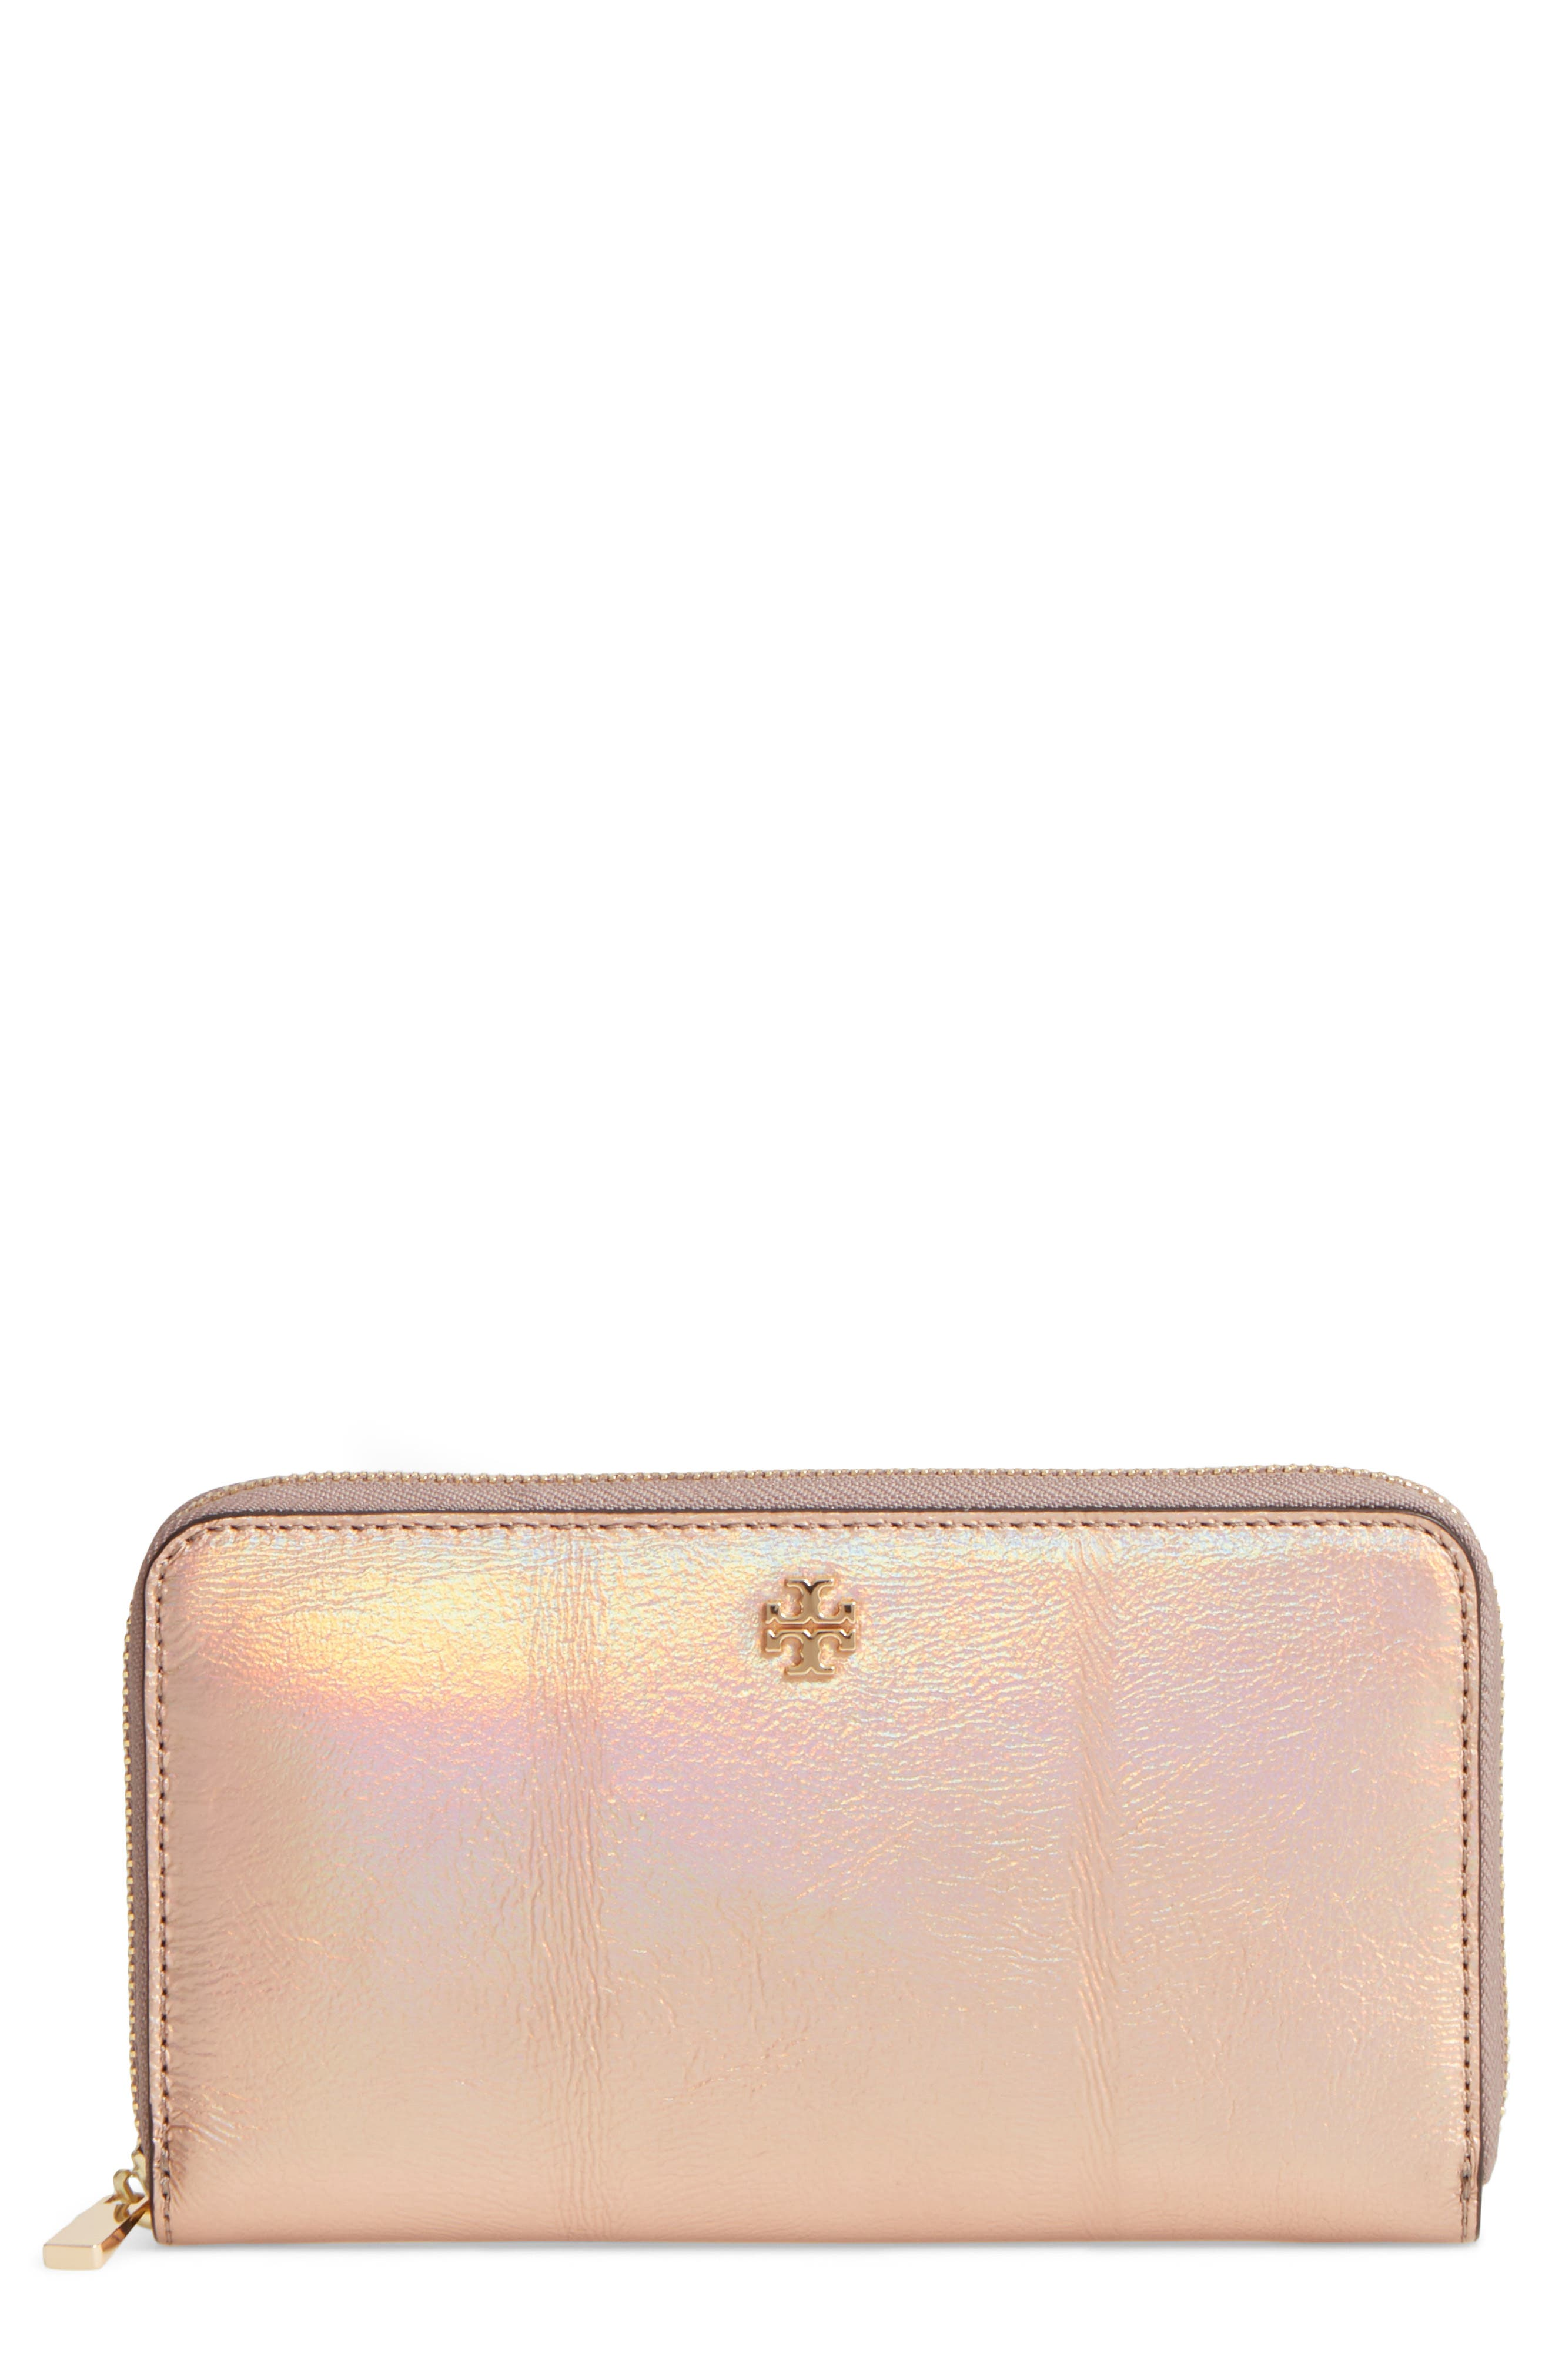 Alternate Image 1 Selected - Tory Burch Robinson Metallic Leather Continental Wallet